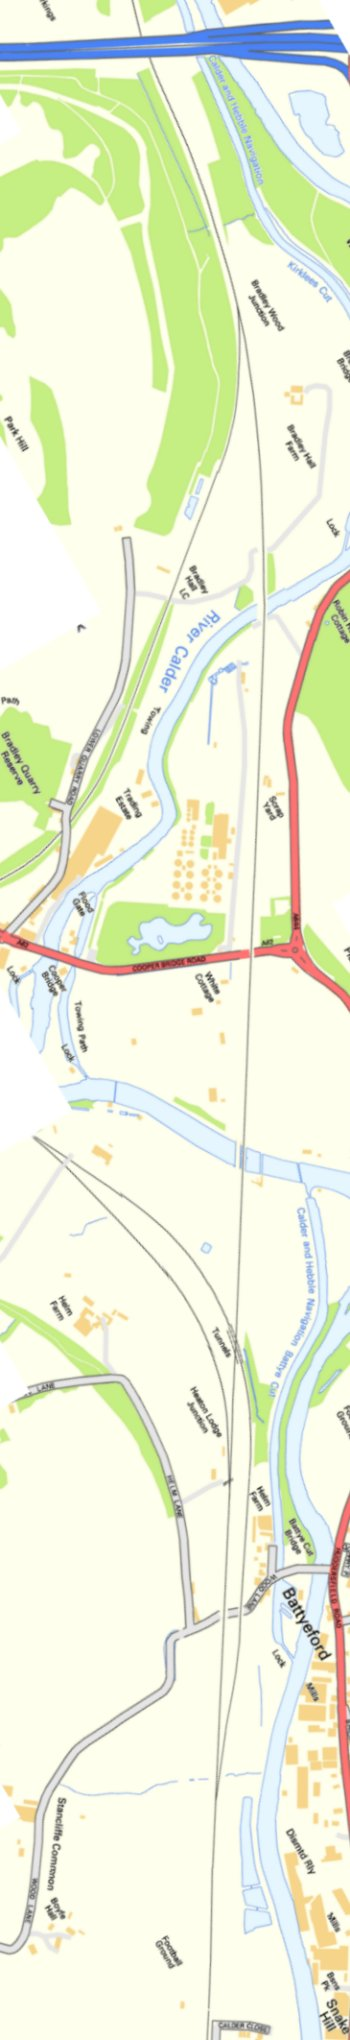 Section from Ordnance Survey OpenSource mapping 2013 showing L&YR railway line from M62 viaduct to Bradley Fold Junction